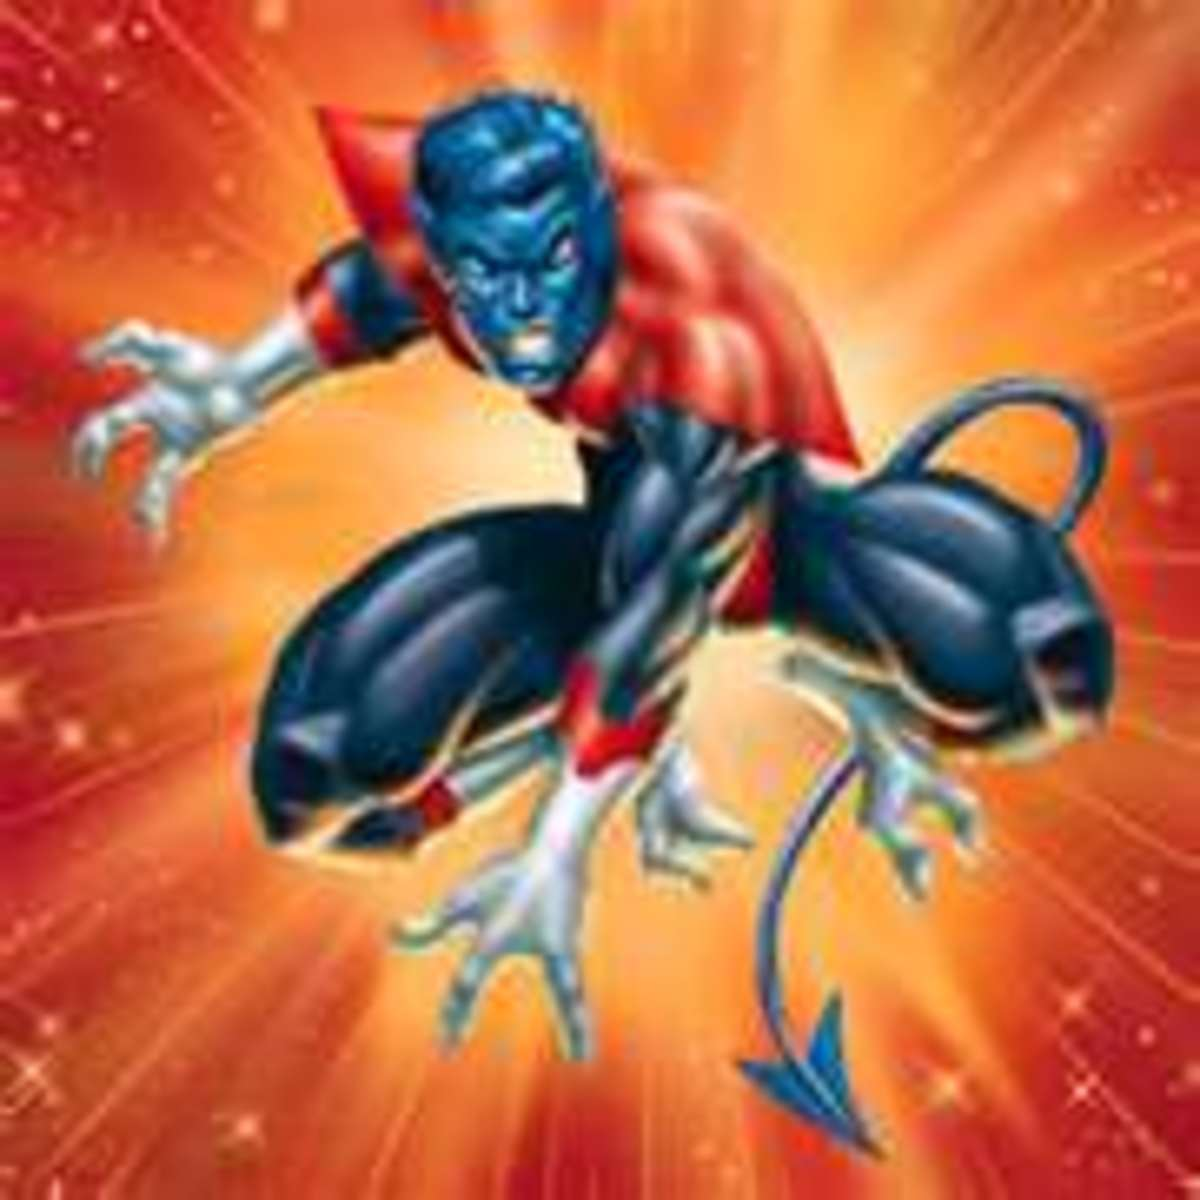 The demonic Nightcrawler is actual a soft spoken master of teleportation.